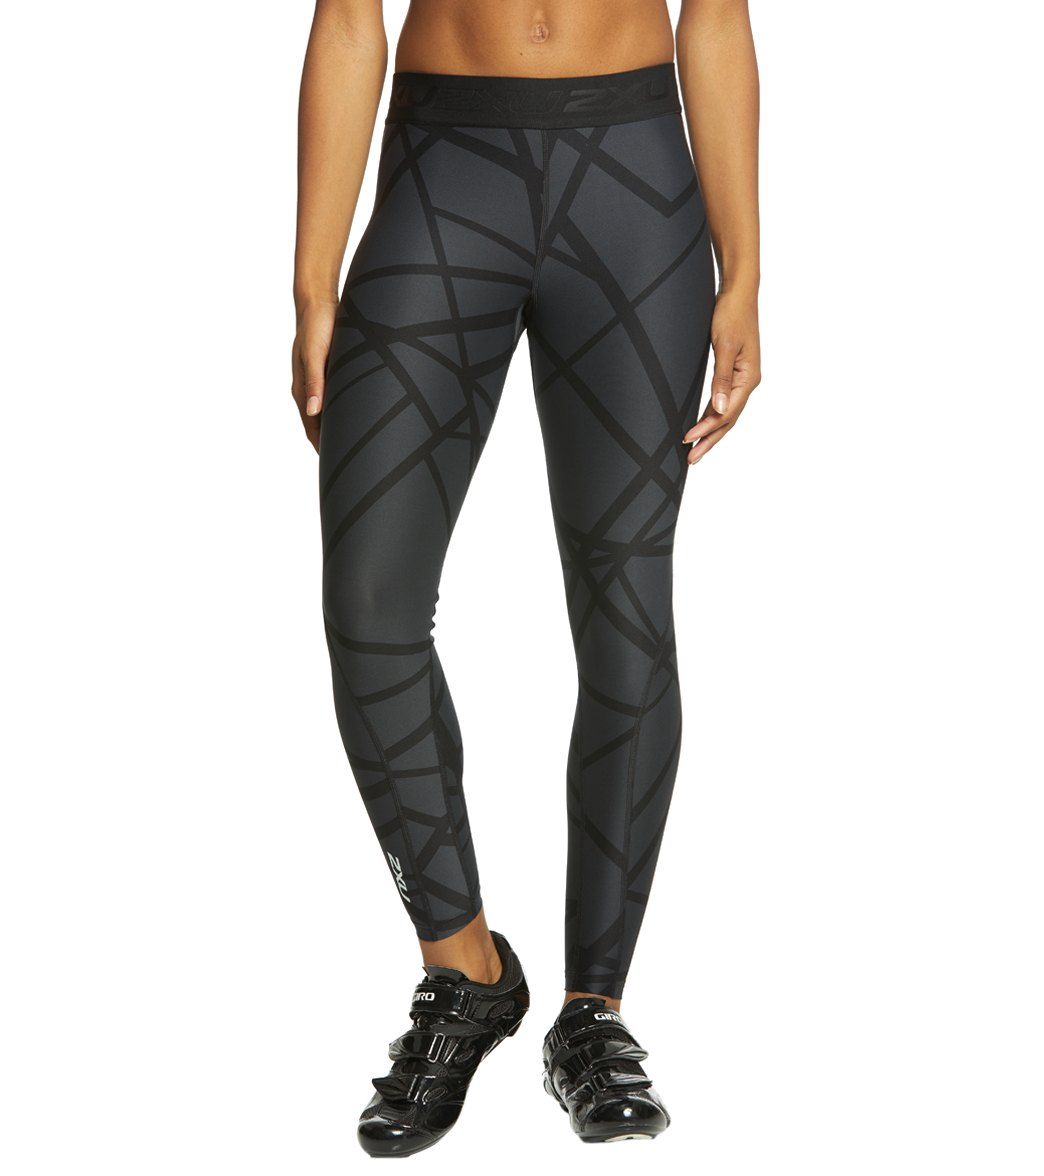 3dd4de98 2XU Women's Print Accelerate Compression Tights at SwimOutlet.com - Free  Shipping